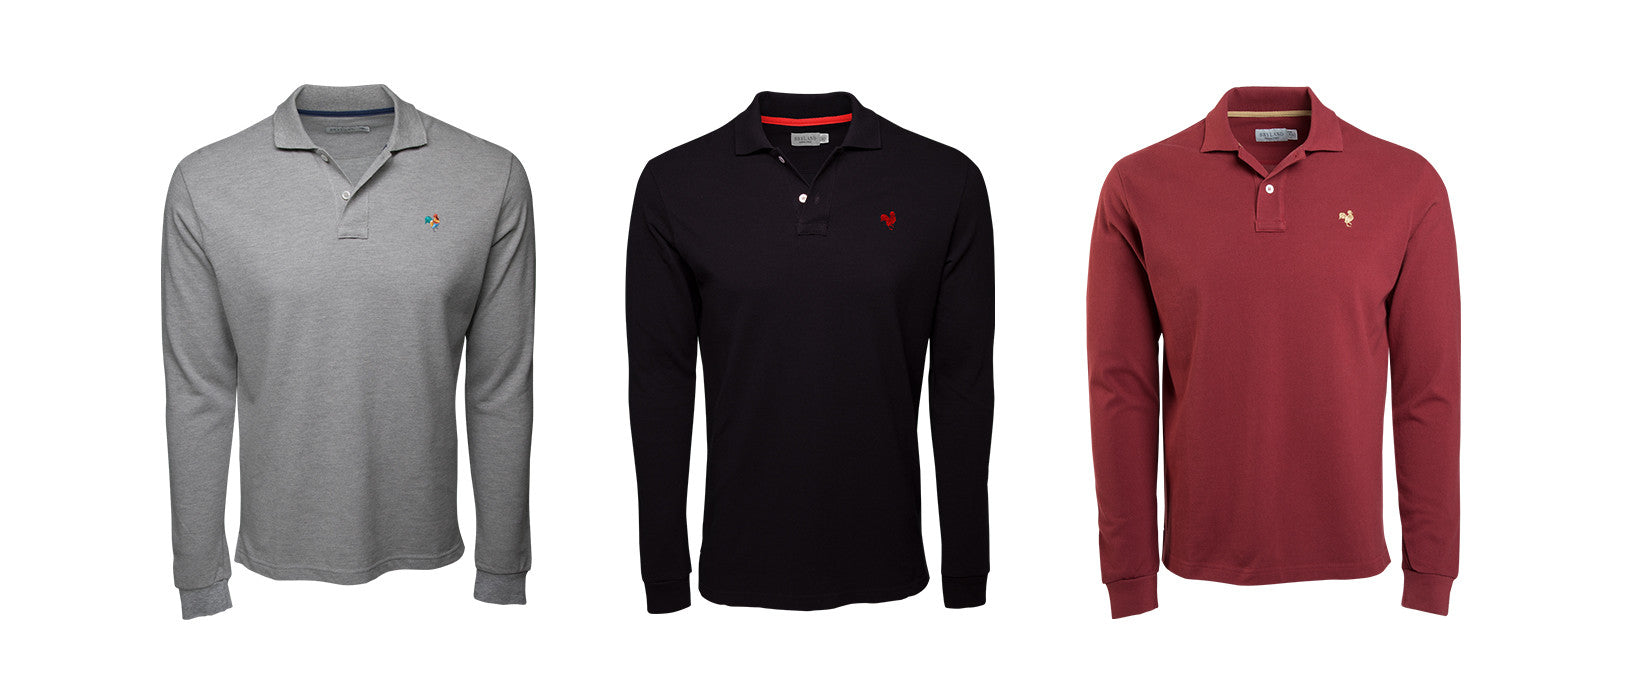 Our collection includes long sleeve polo shirts for Spring/Summer